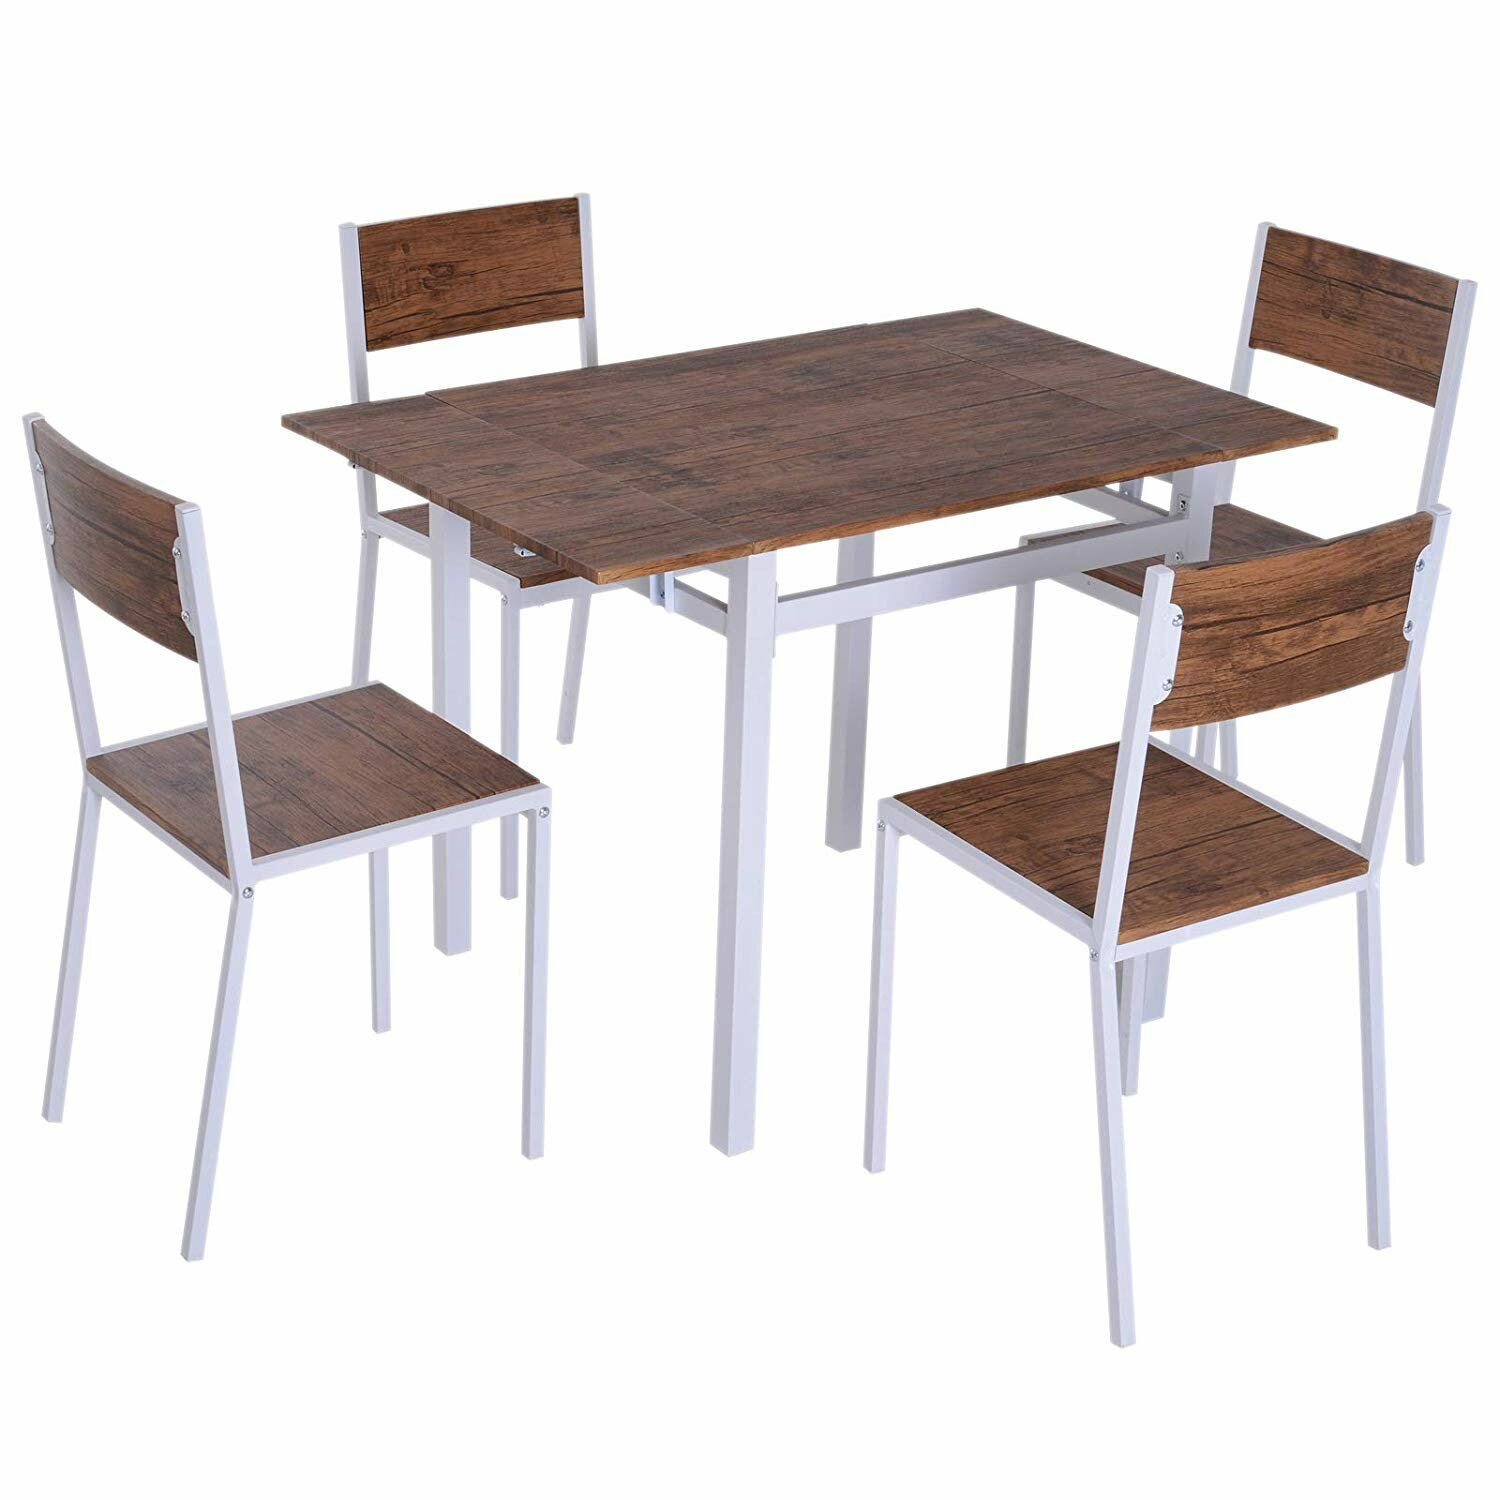 Picture of: 17 Stories Plaskitt Folding Dining Table Set With 4 Chairs Wayfair Co Uk